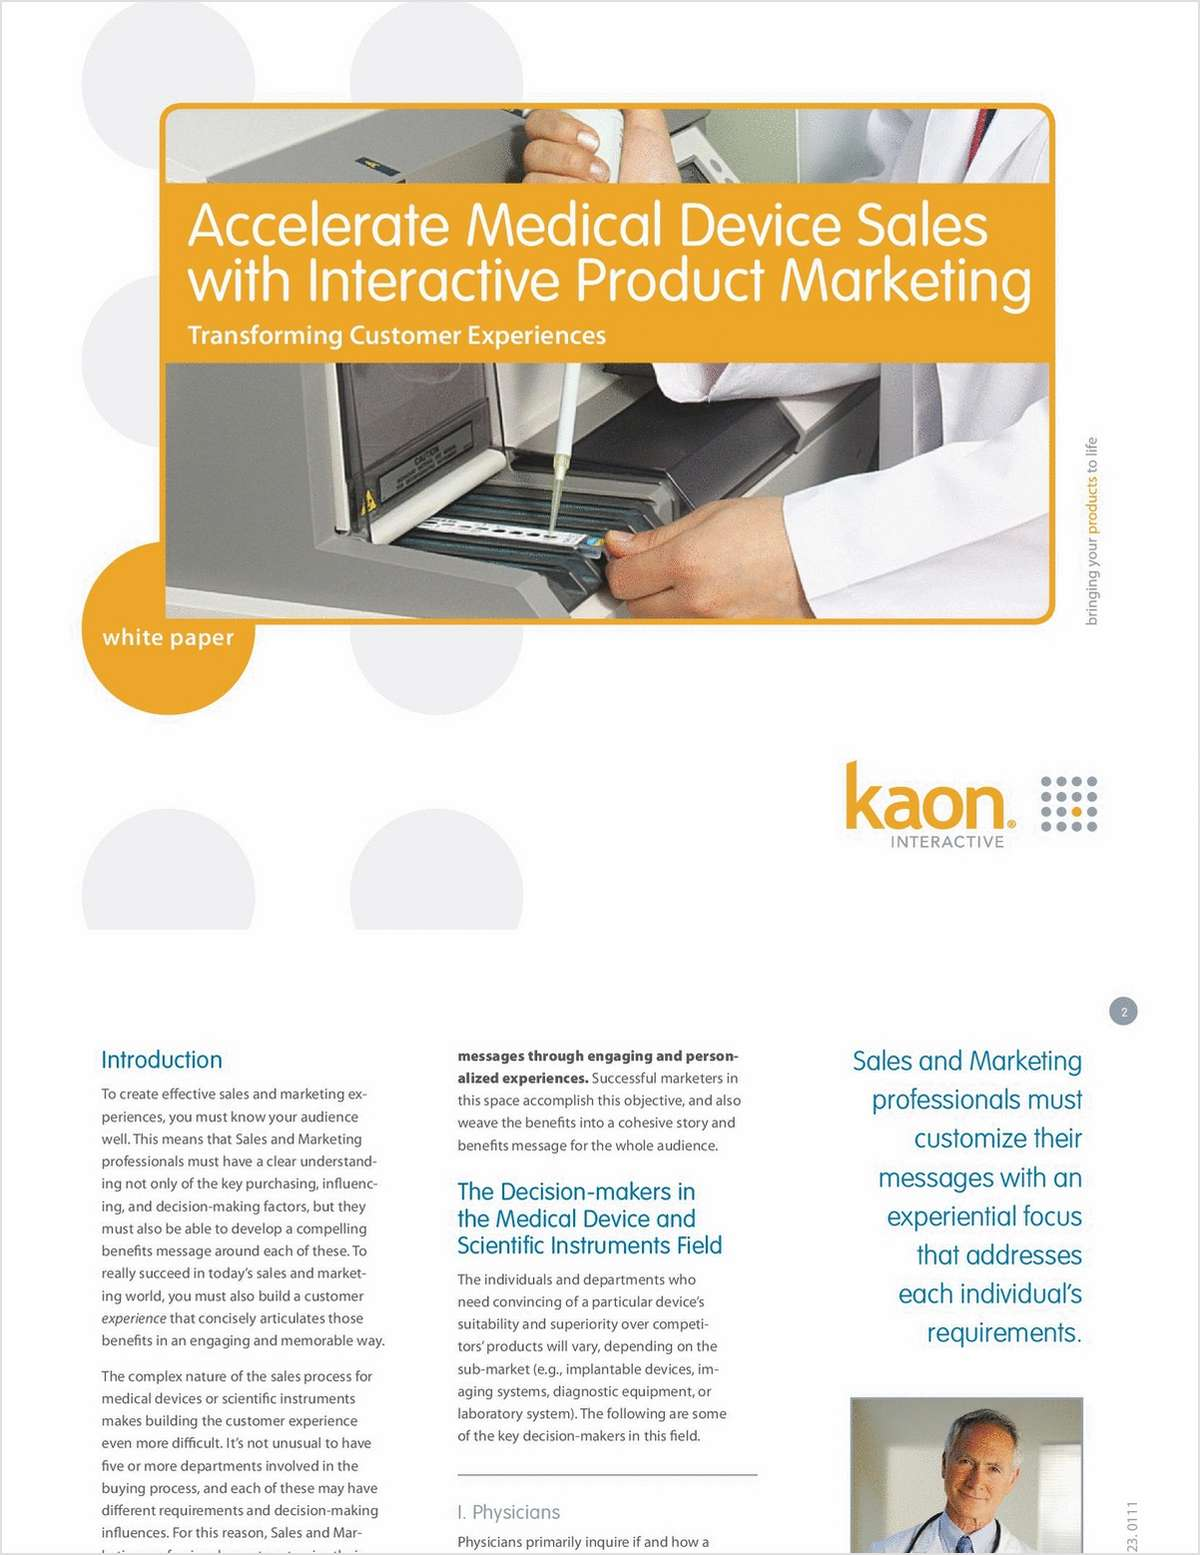 Accelerate Medical Device Sales with Interactive Marketing Solutions